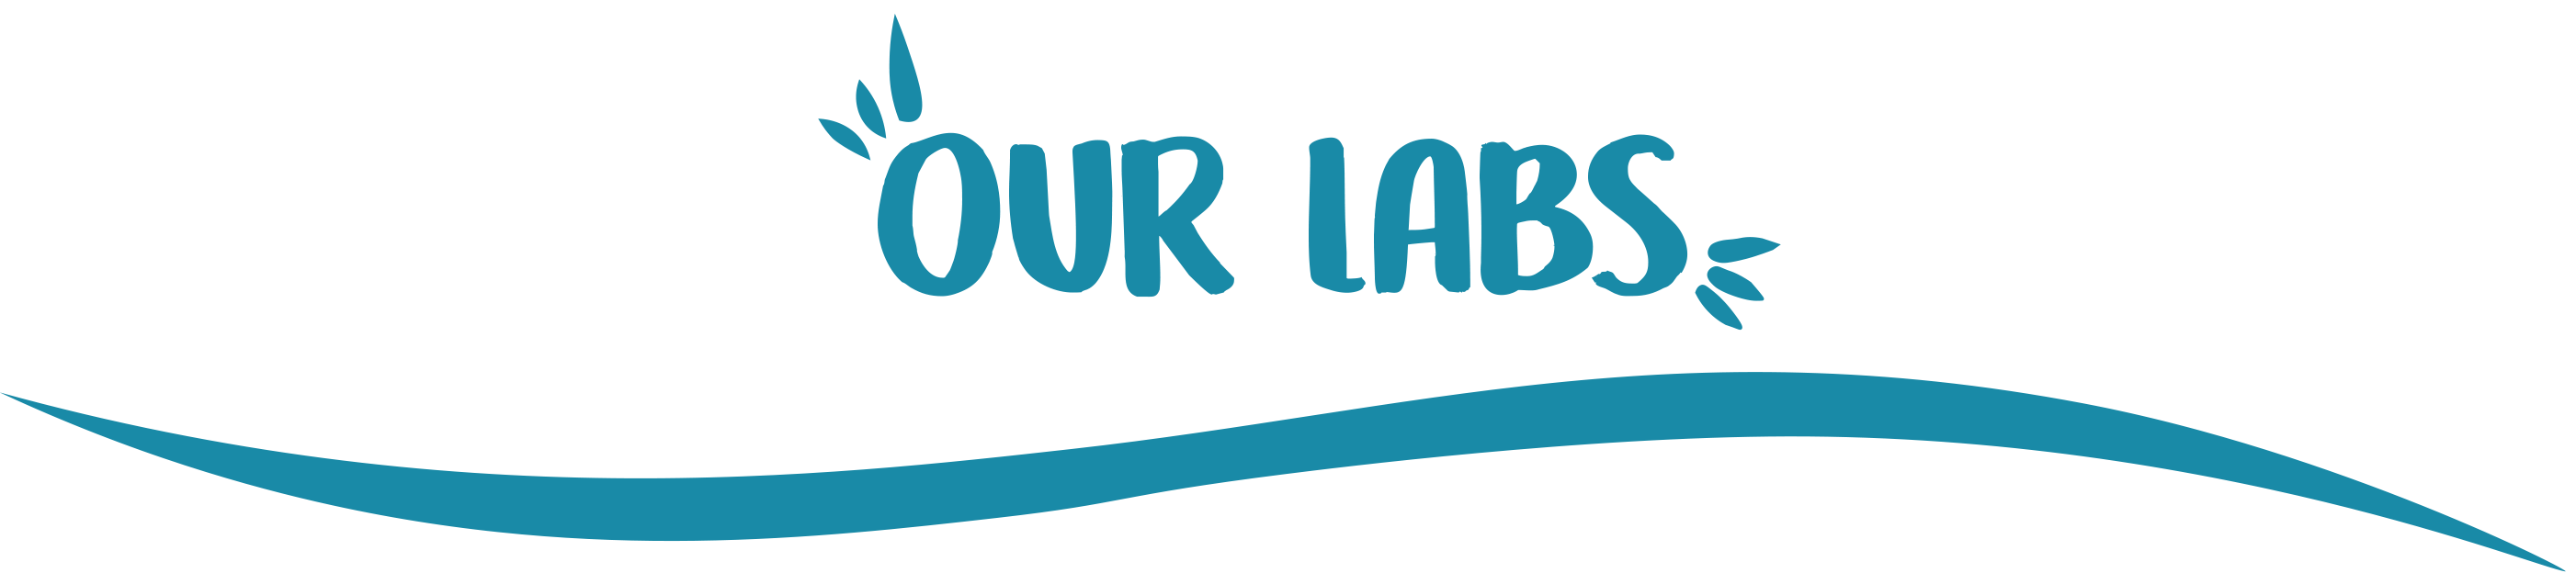 our labs wave title